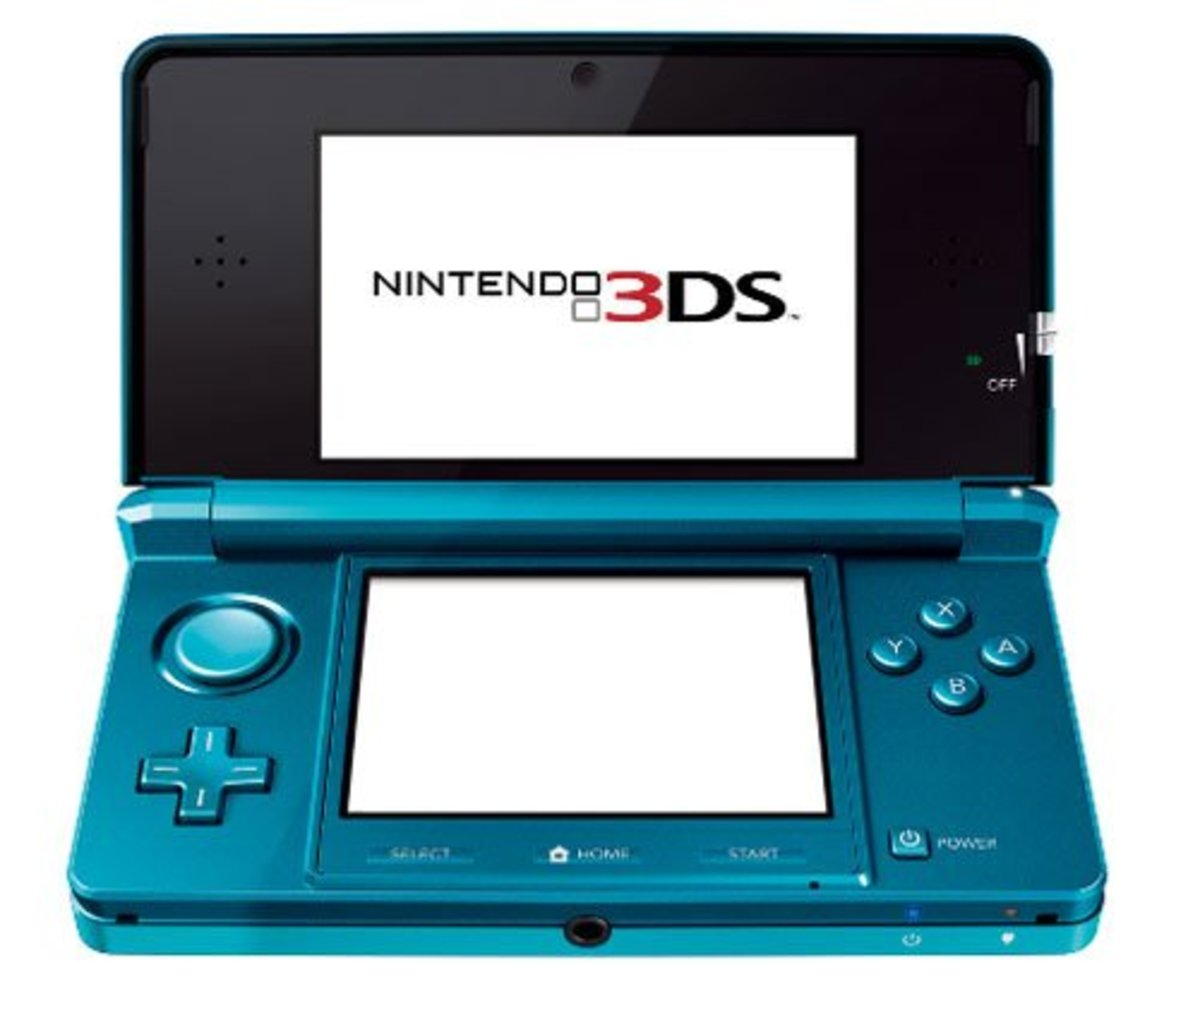 what-is-the-difference-between-nintendo-ds-models